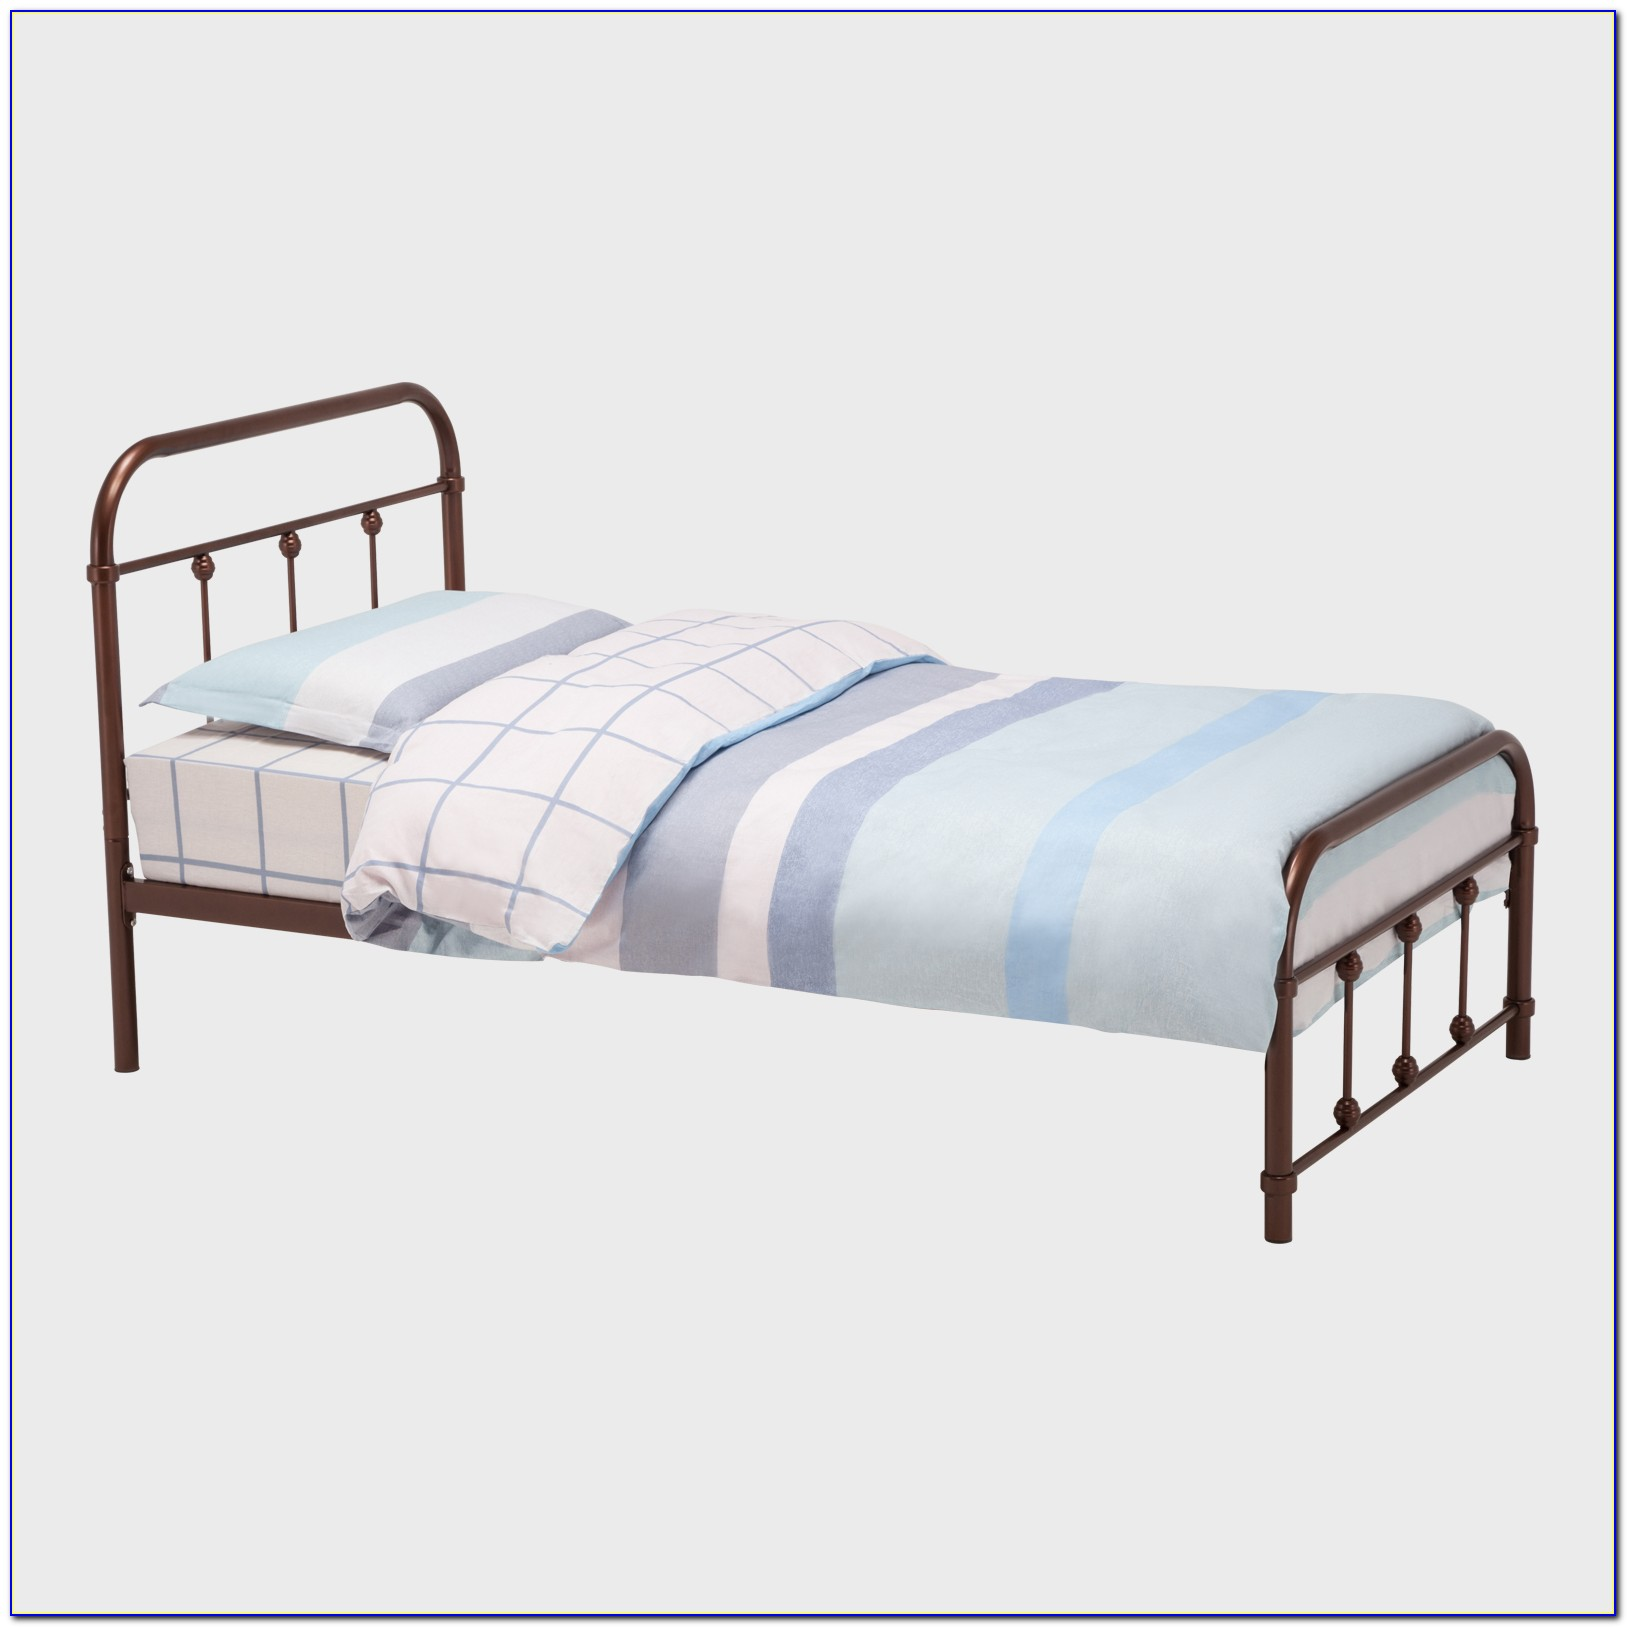 Dimension Of Queen Size Headboard